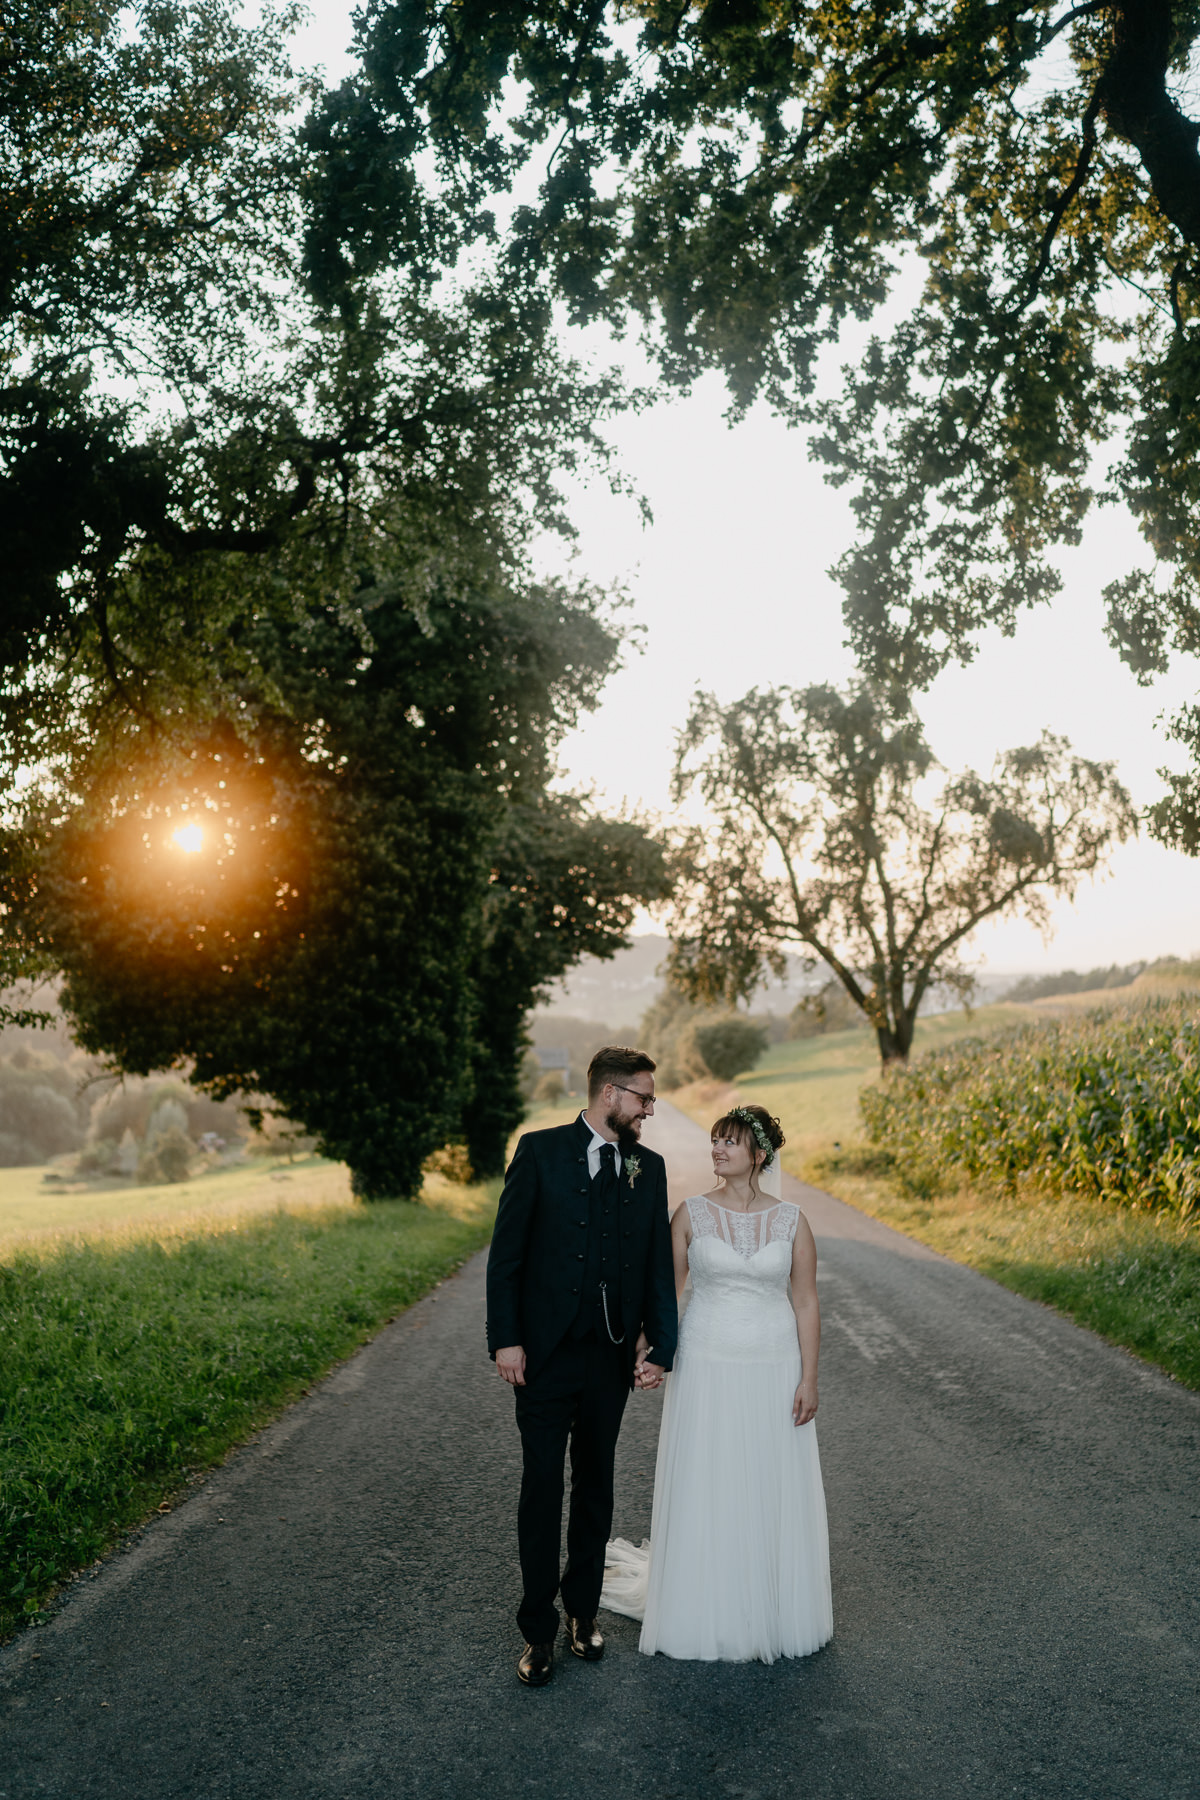 Wedding couple in the middle of the road at sunset in Austria